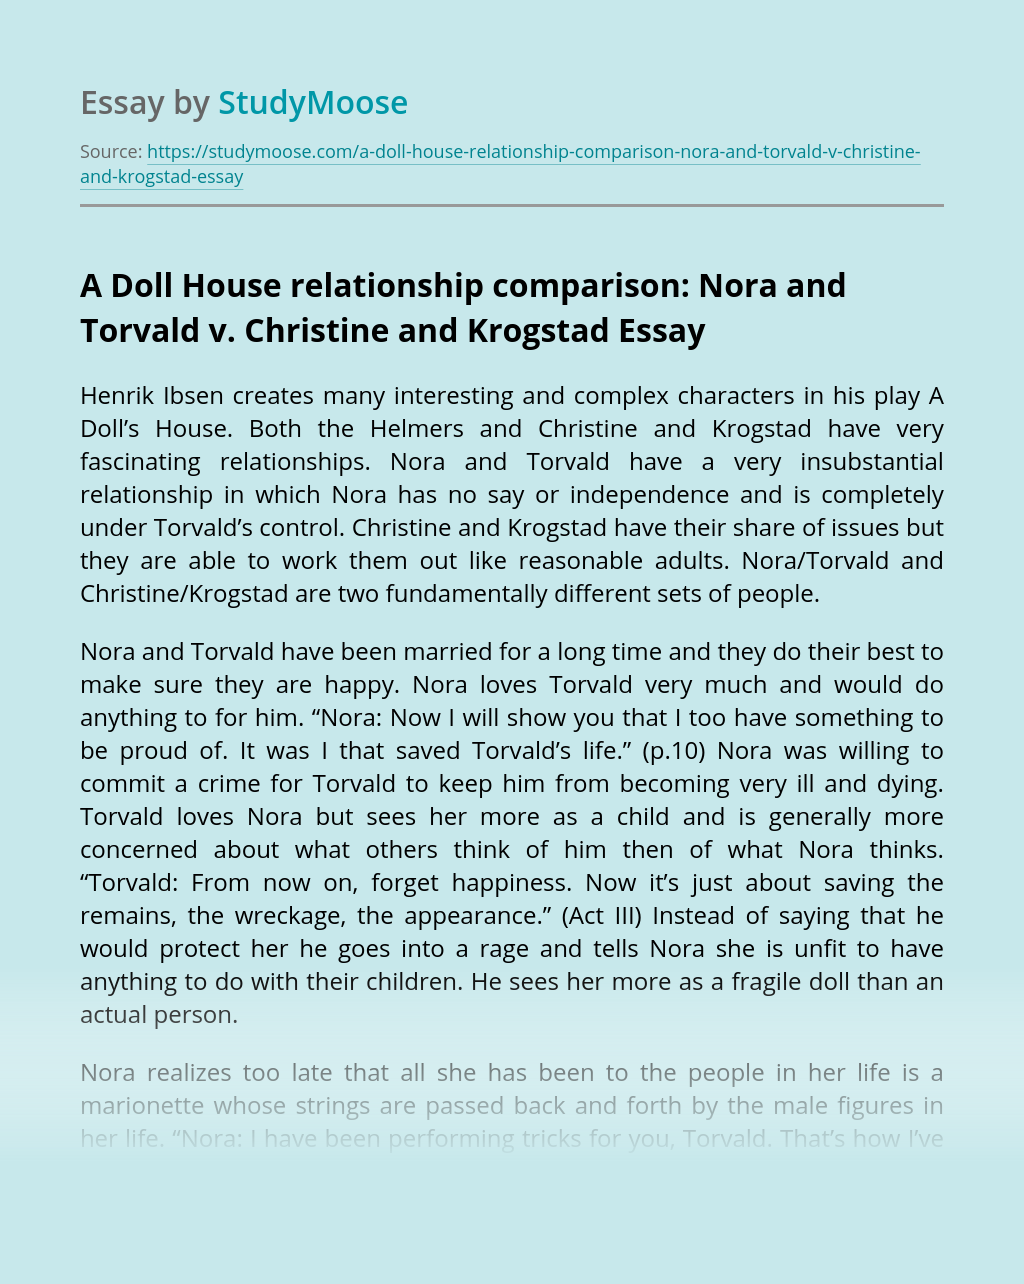 A Doll House relationship comparison: Nora and Torvald v. Christine and Krogstad